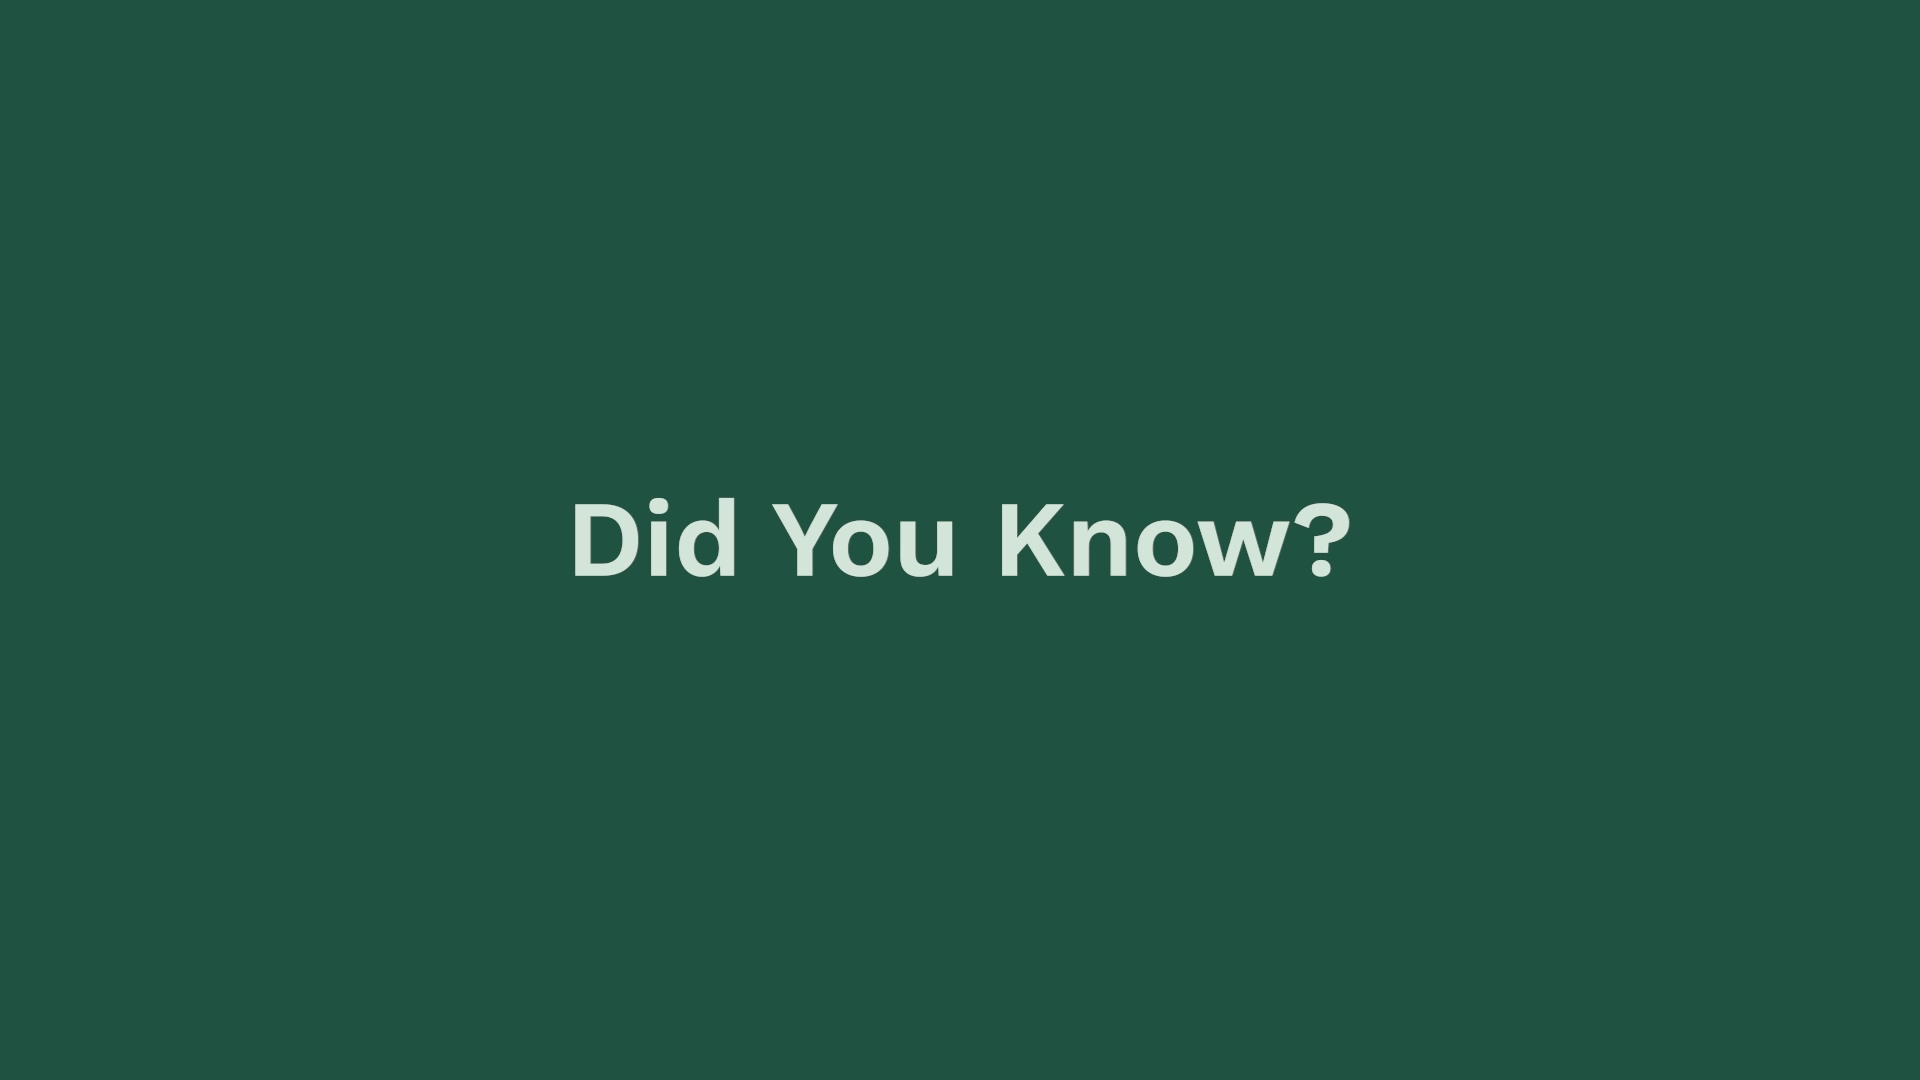 DID YOU KNOW - US - FINAL